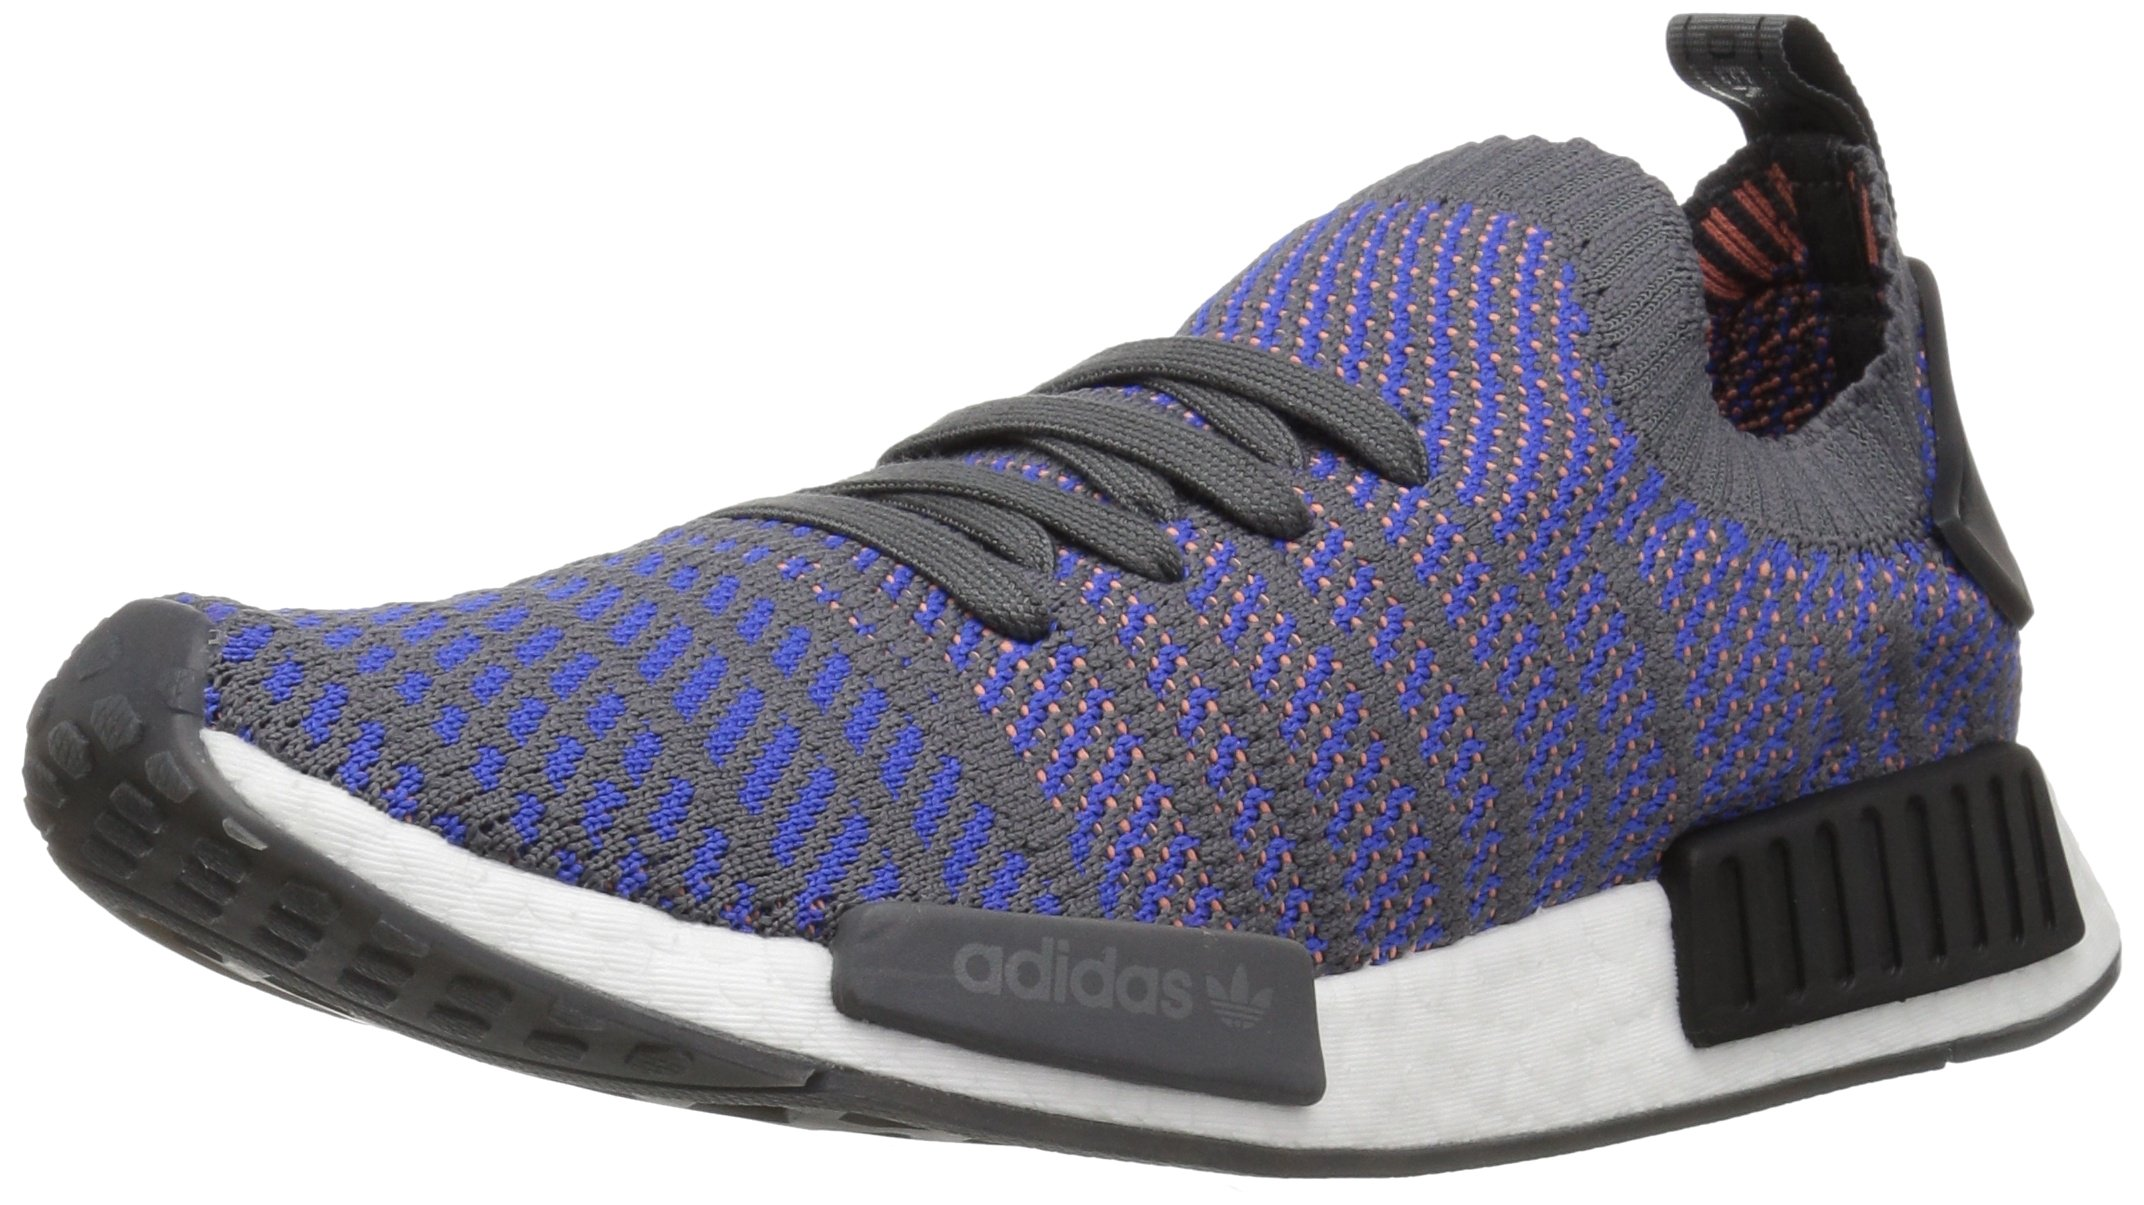 bb9875017dc03 Galleon - Adidas Originals Men s NMD R1 STLT PK